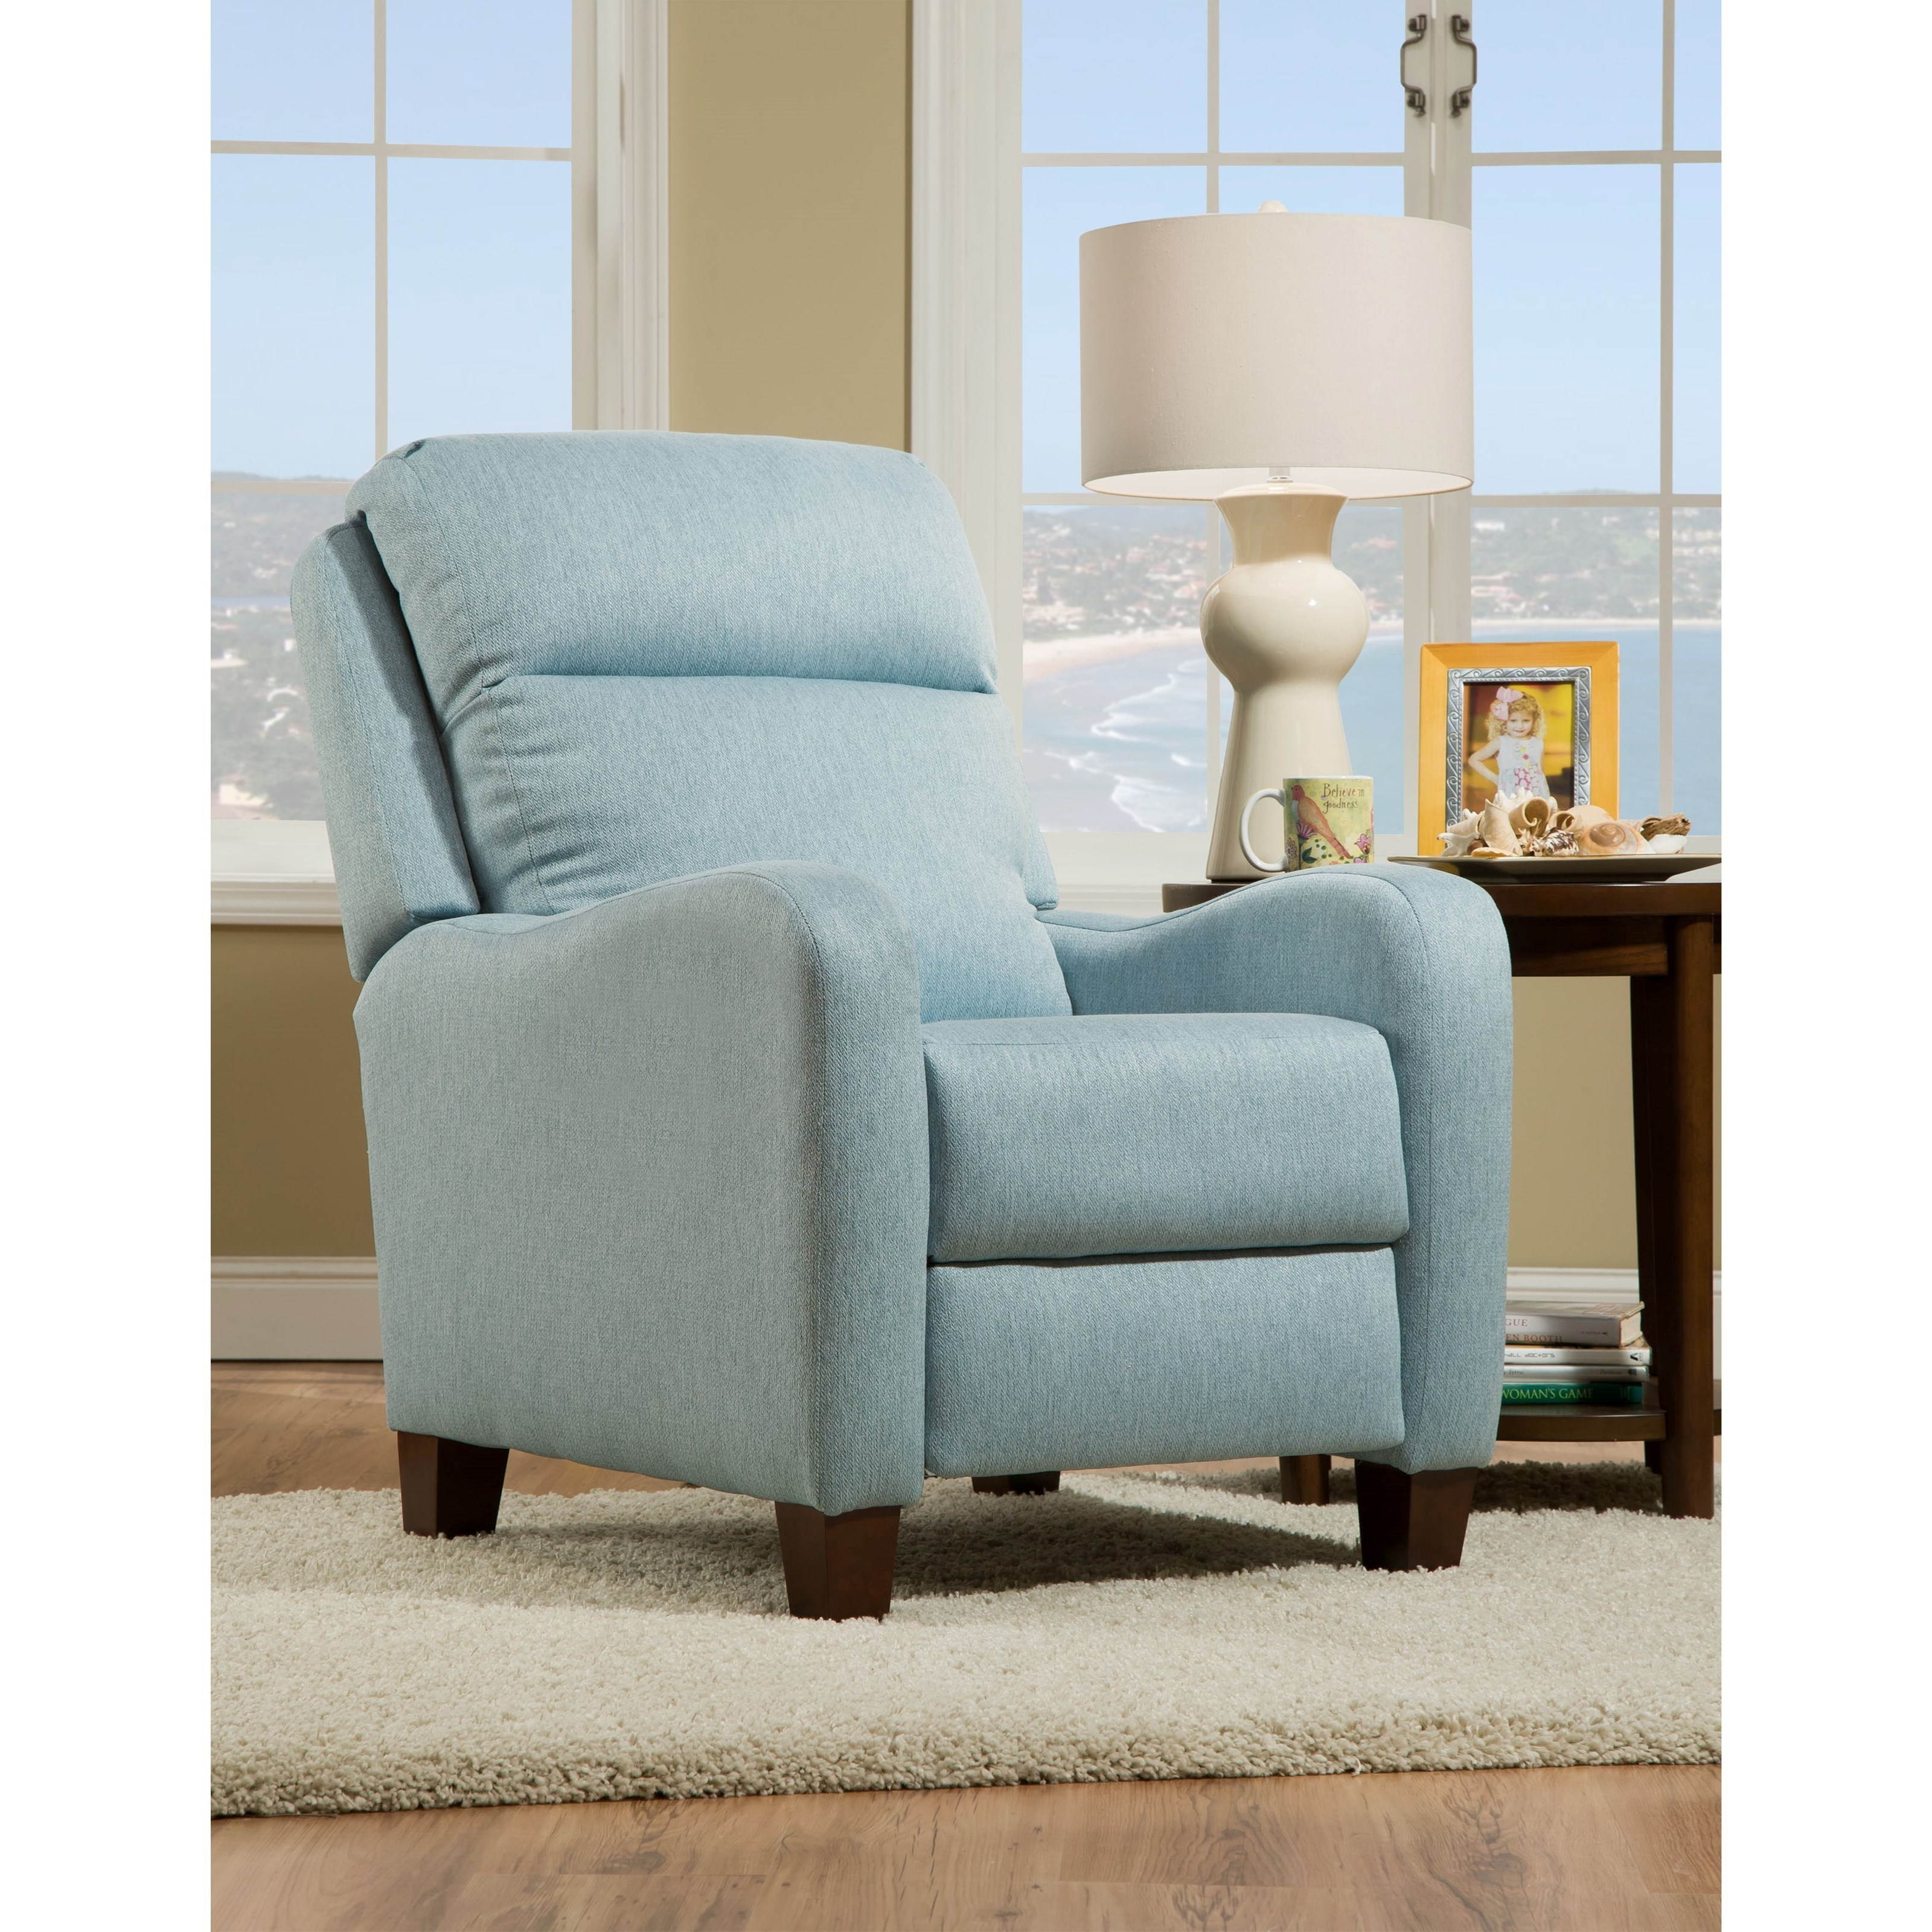 Shown in Adele Breeze 248-61  sc 1 st  Olindeu0027s Furniture & Southern Motion Recliners Prestige Power Recliner - Olindeu0027s ... islam-shia.org